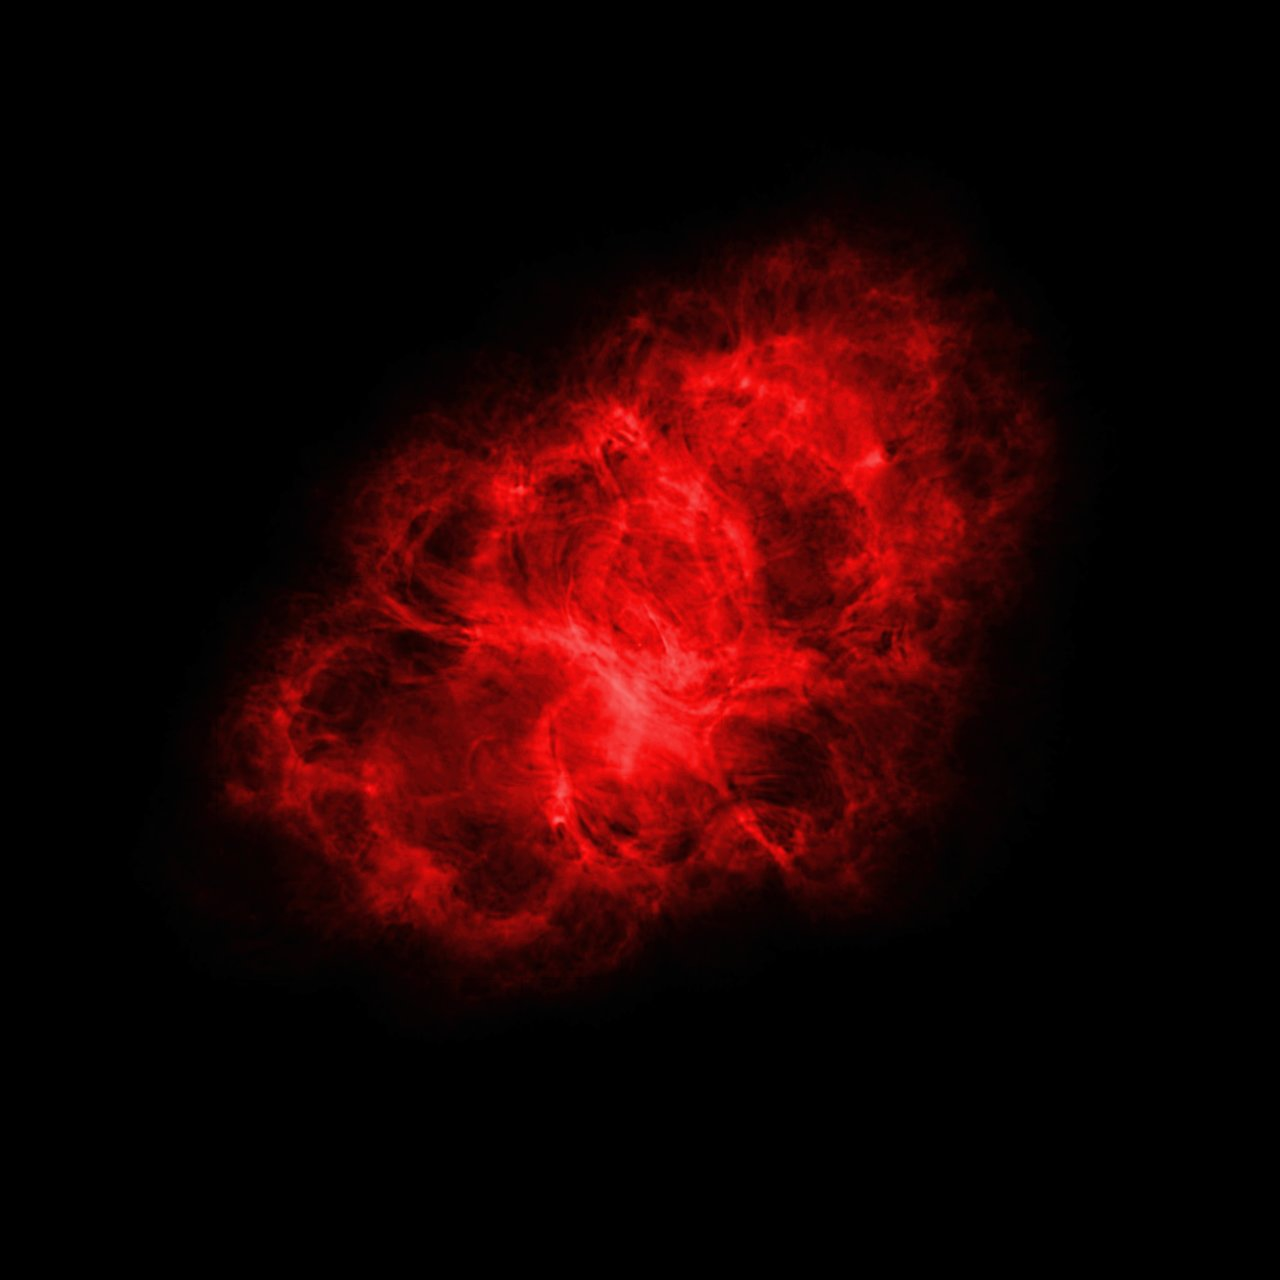 Very Large Array (radio) Image of the Crab Nebula